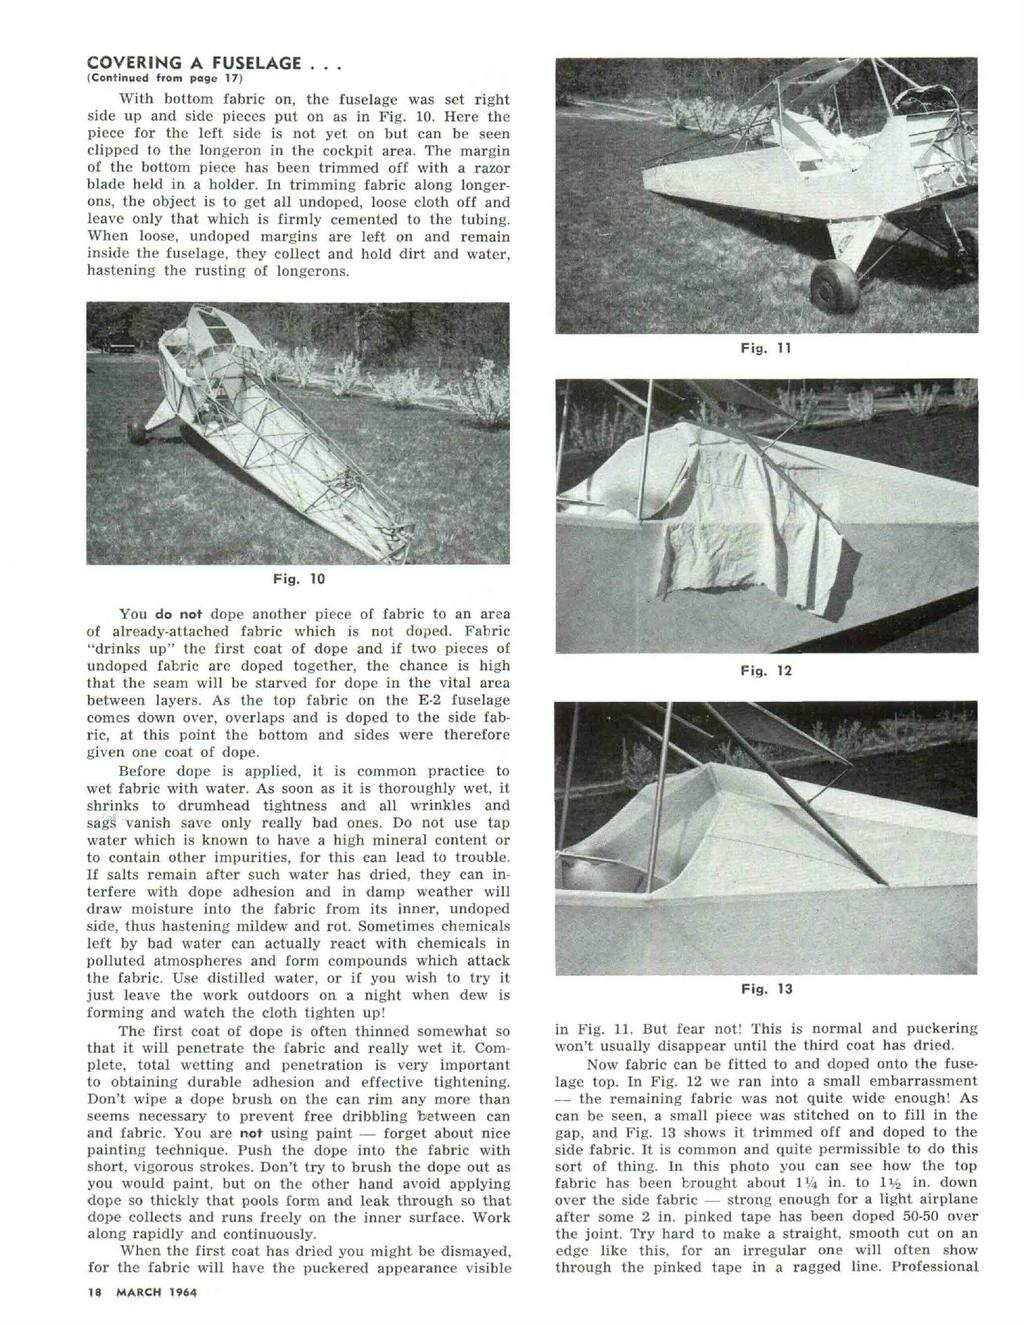 COVERING A FUSELAGE... (Continued from page 17) With bottom fabric on, the fuselage was set right side up and side pieces put on as in Fig. 10.